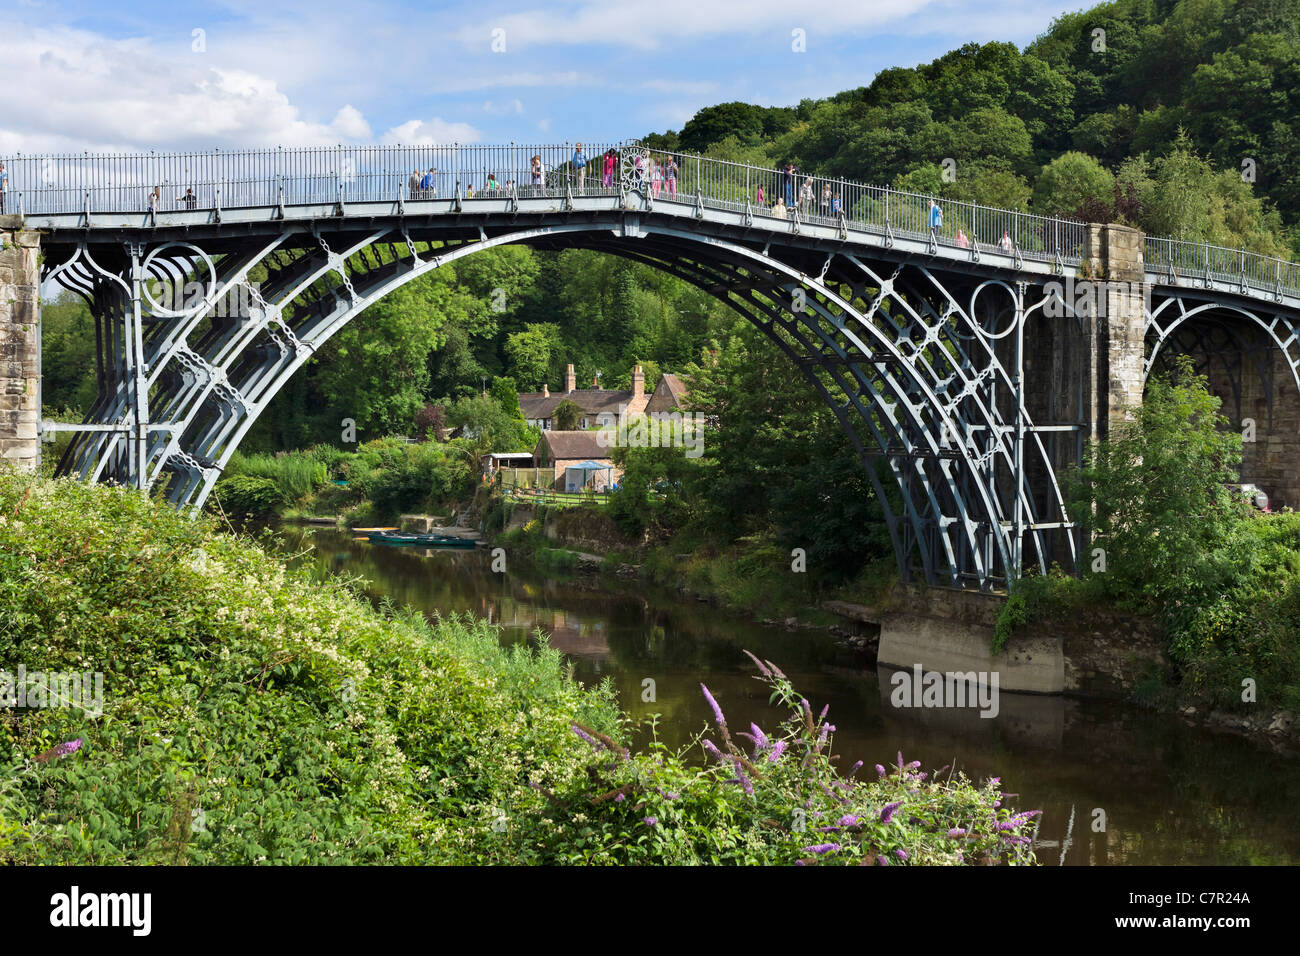 The famous Iron Bridge spanning the River Severn in the historic town of Ironbridge, Shropshire, England, UK - Stock Image